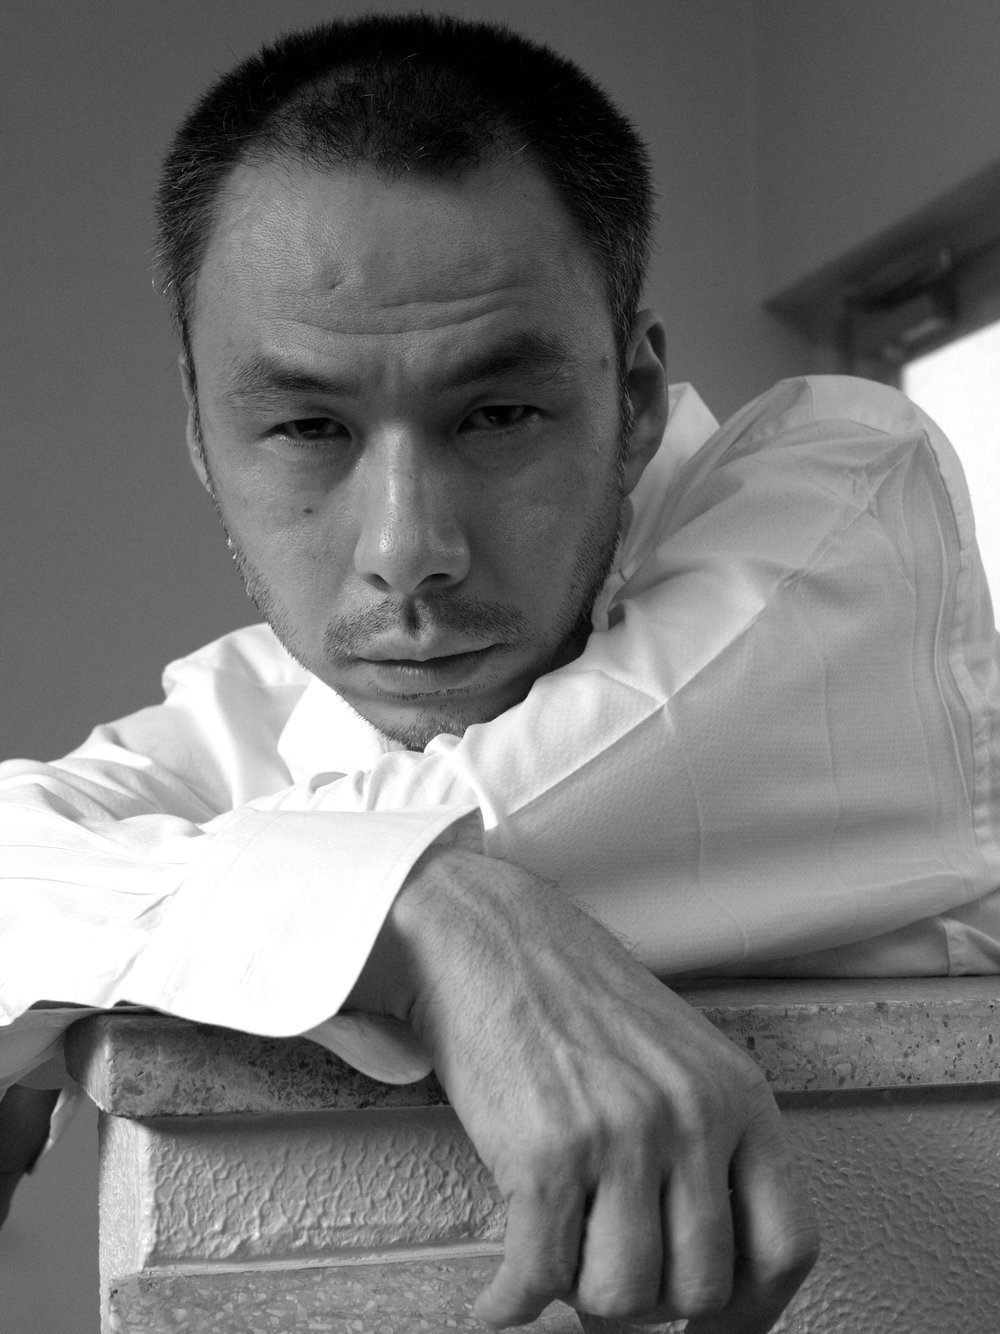 Koichi Imaizumi   Koichi Imaizumi began his career in 1990 as an actor in the pink film (Japanese romantic porn film) industry. He made his first gay film in 1999, and since then has consistently been making gay films on an independent basis. Japan has very few filmmakers dealing with the issues of sexual minorities giving Imaizumi a unique position in the independent film scene, serially producing films with dramatic contents.